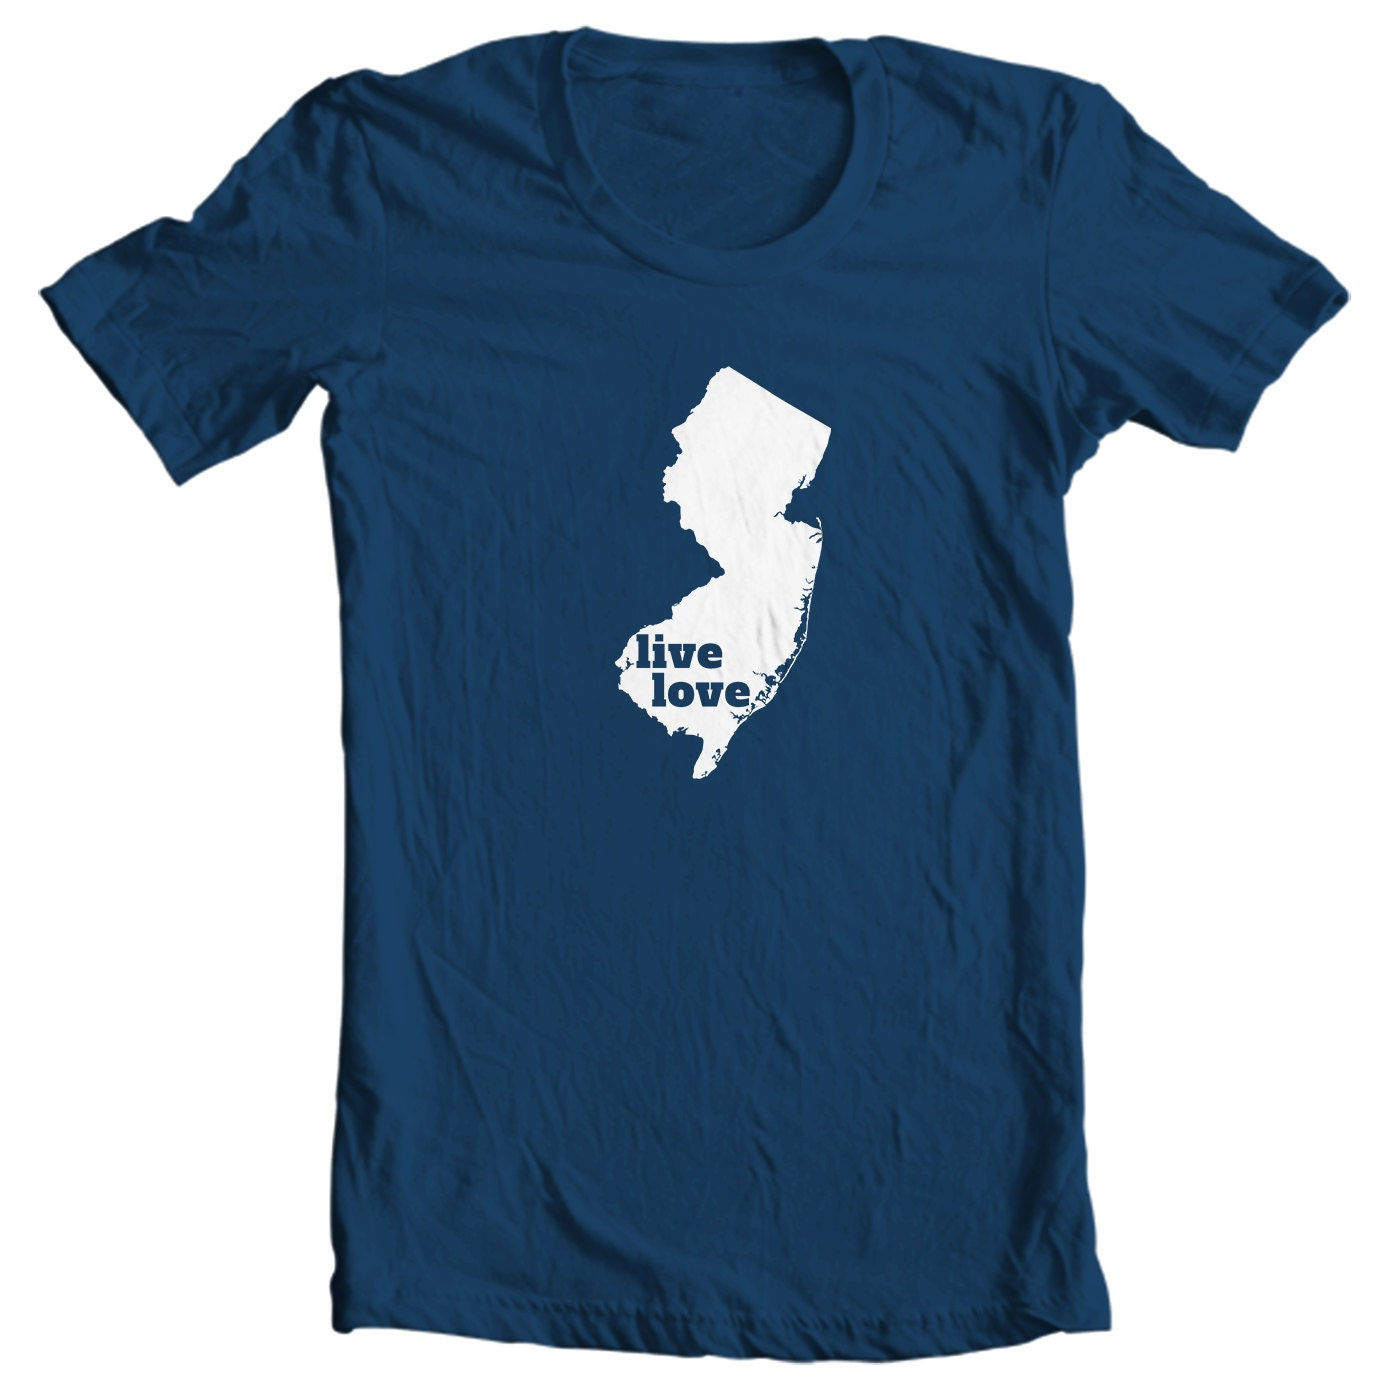 New Jersey T-shirt - Live Love New Jersey - My State New Jersey T-shirt